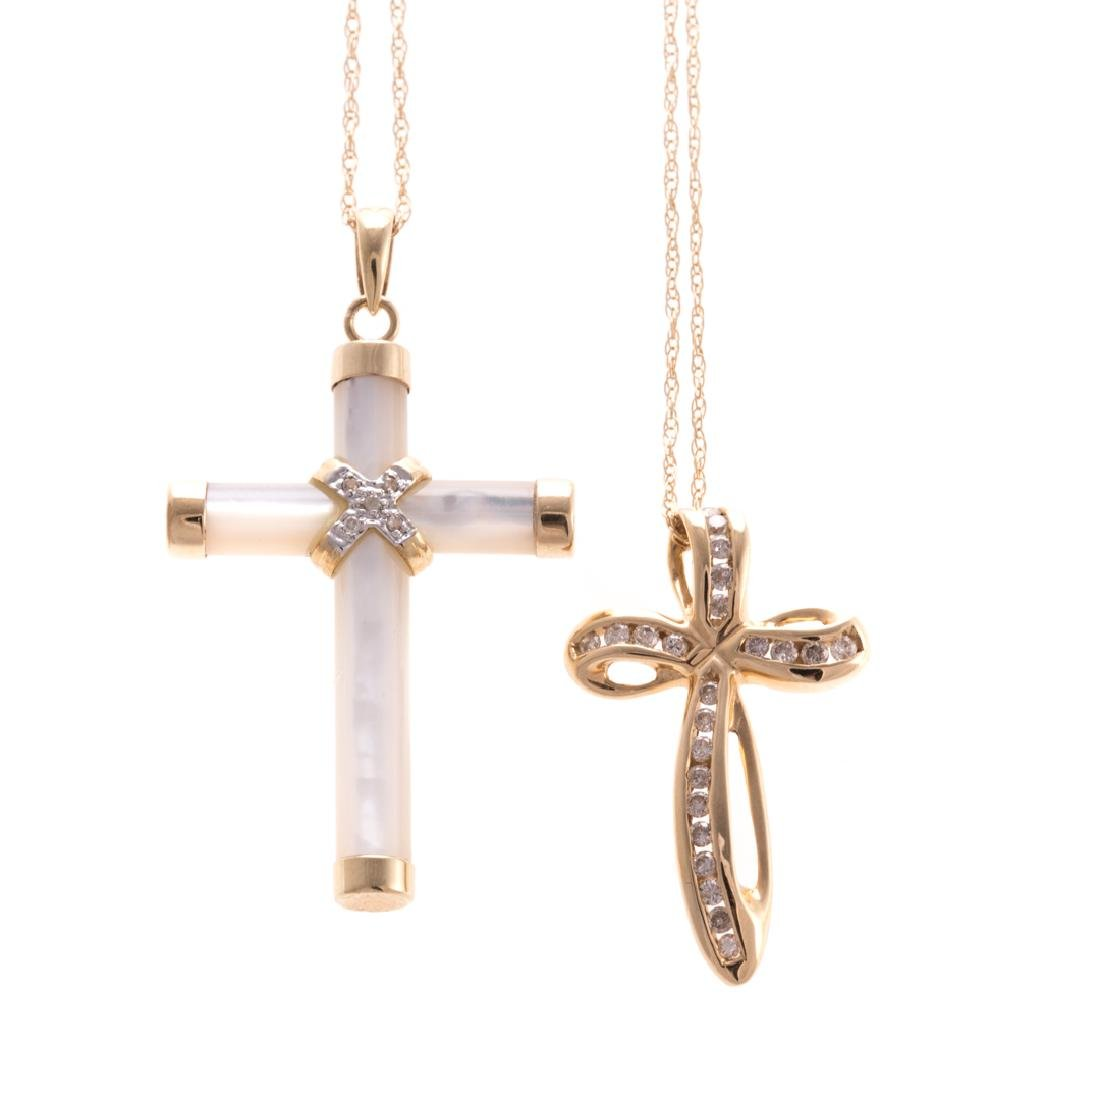 A Pair of Lady's Cross Pendant in Gold